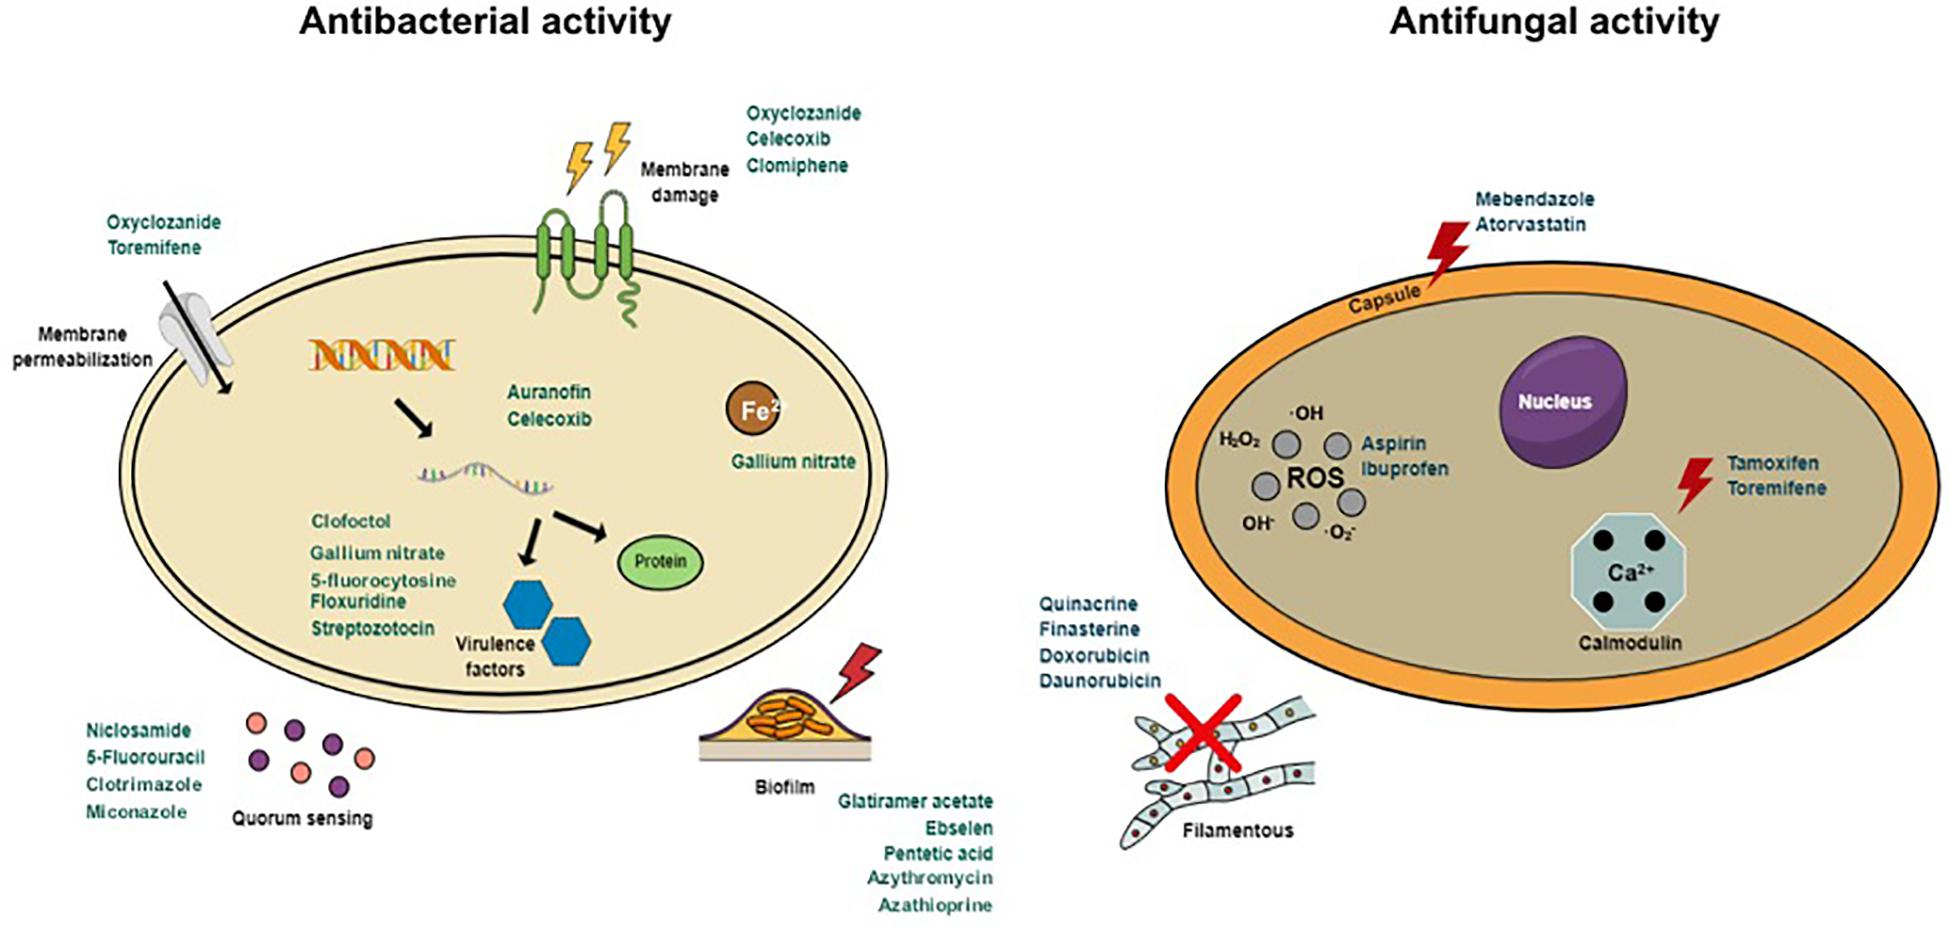 some anthelmintic therapeutic agents work by